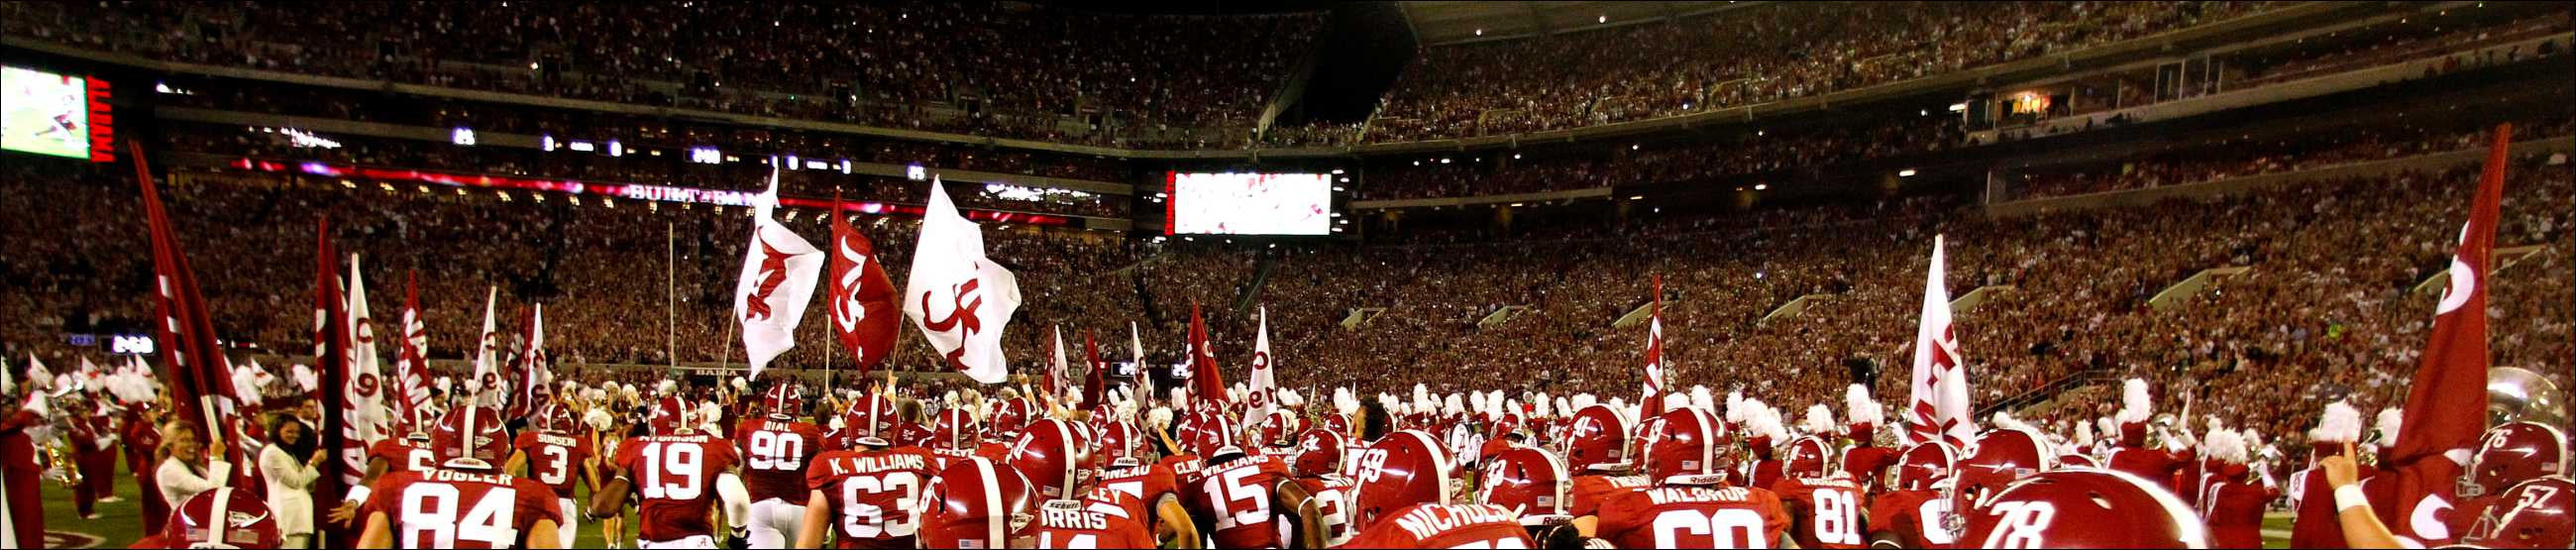 Alabama (Tuscaloosa) Crimson Tide